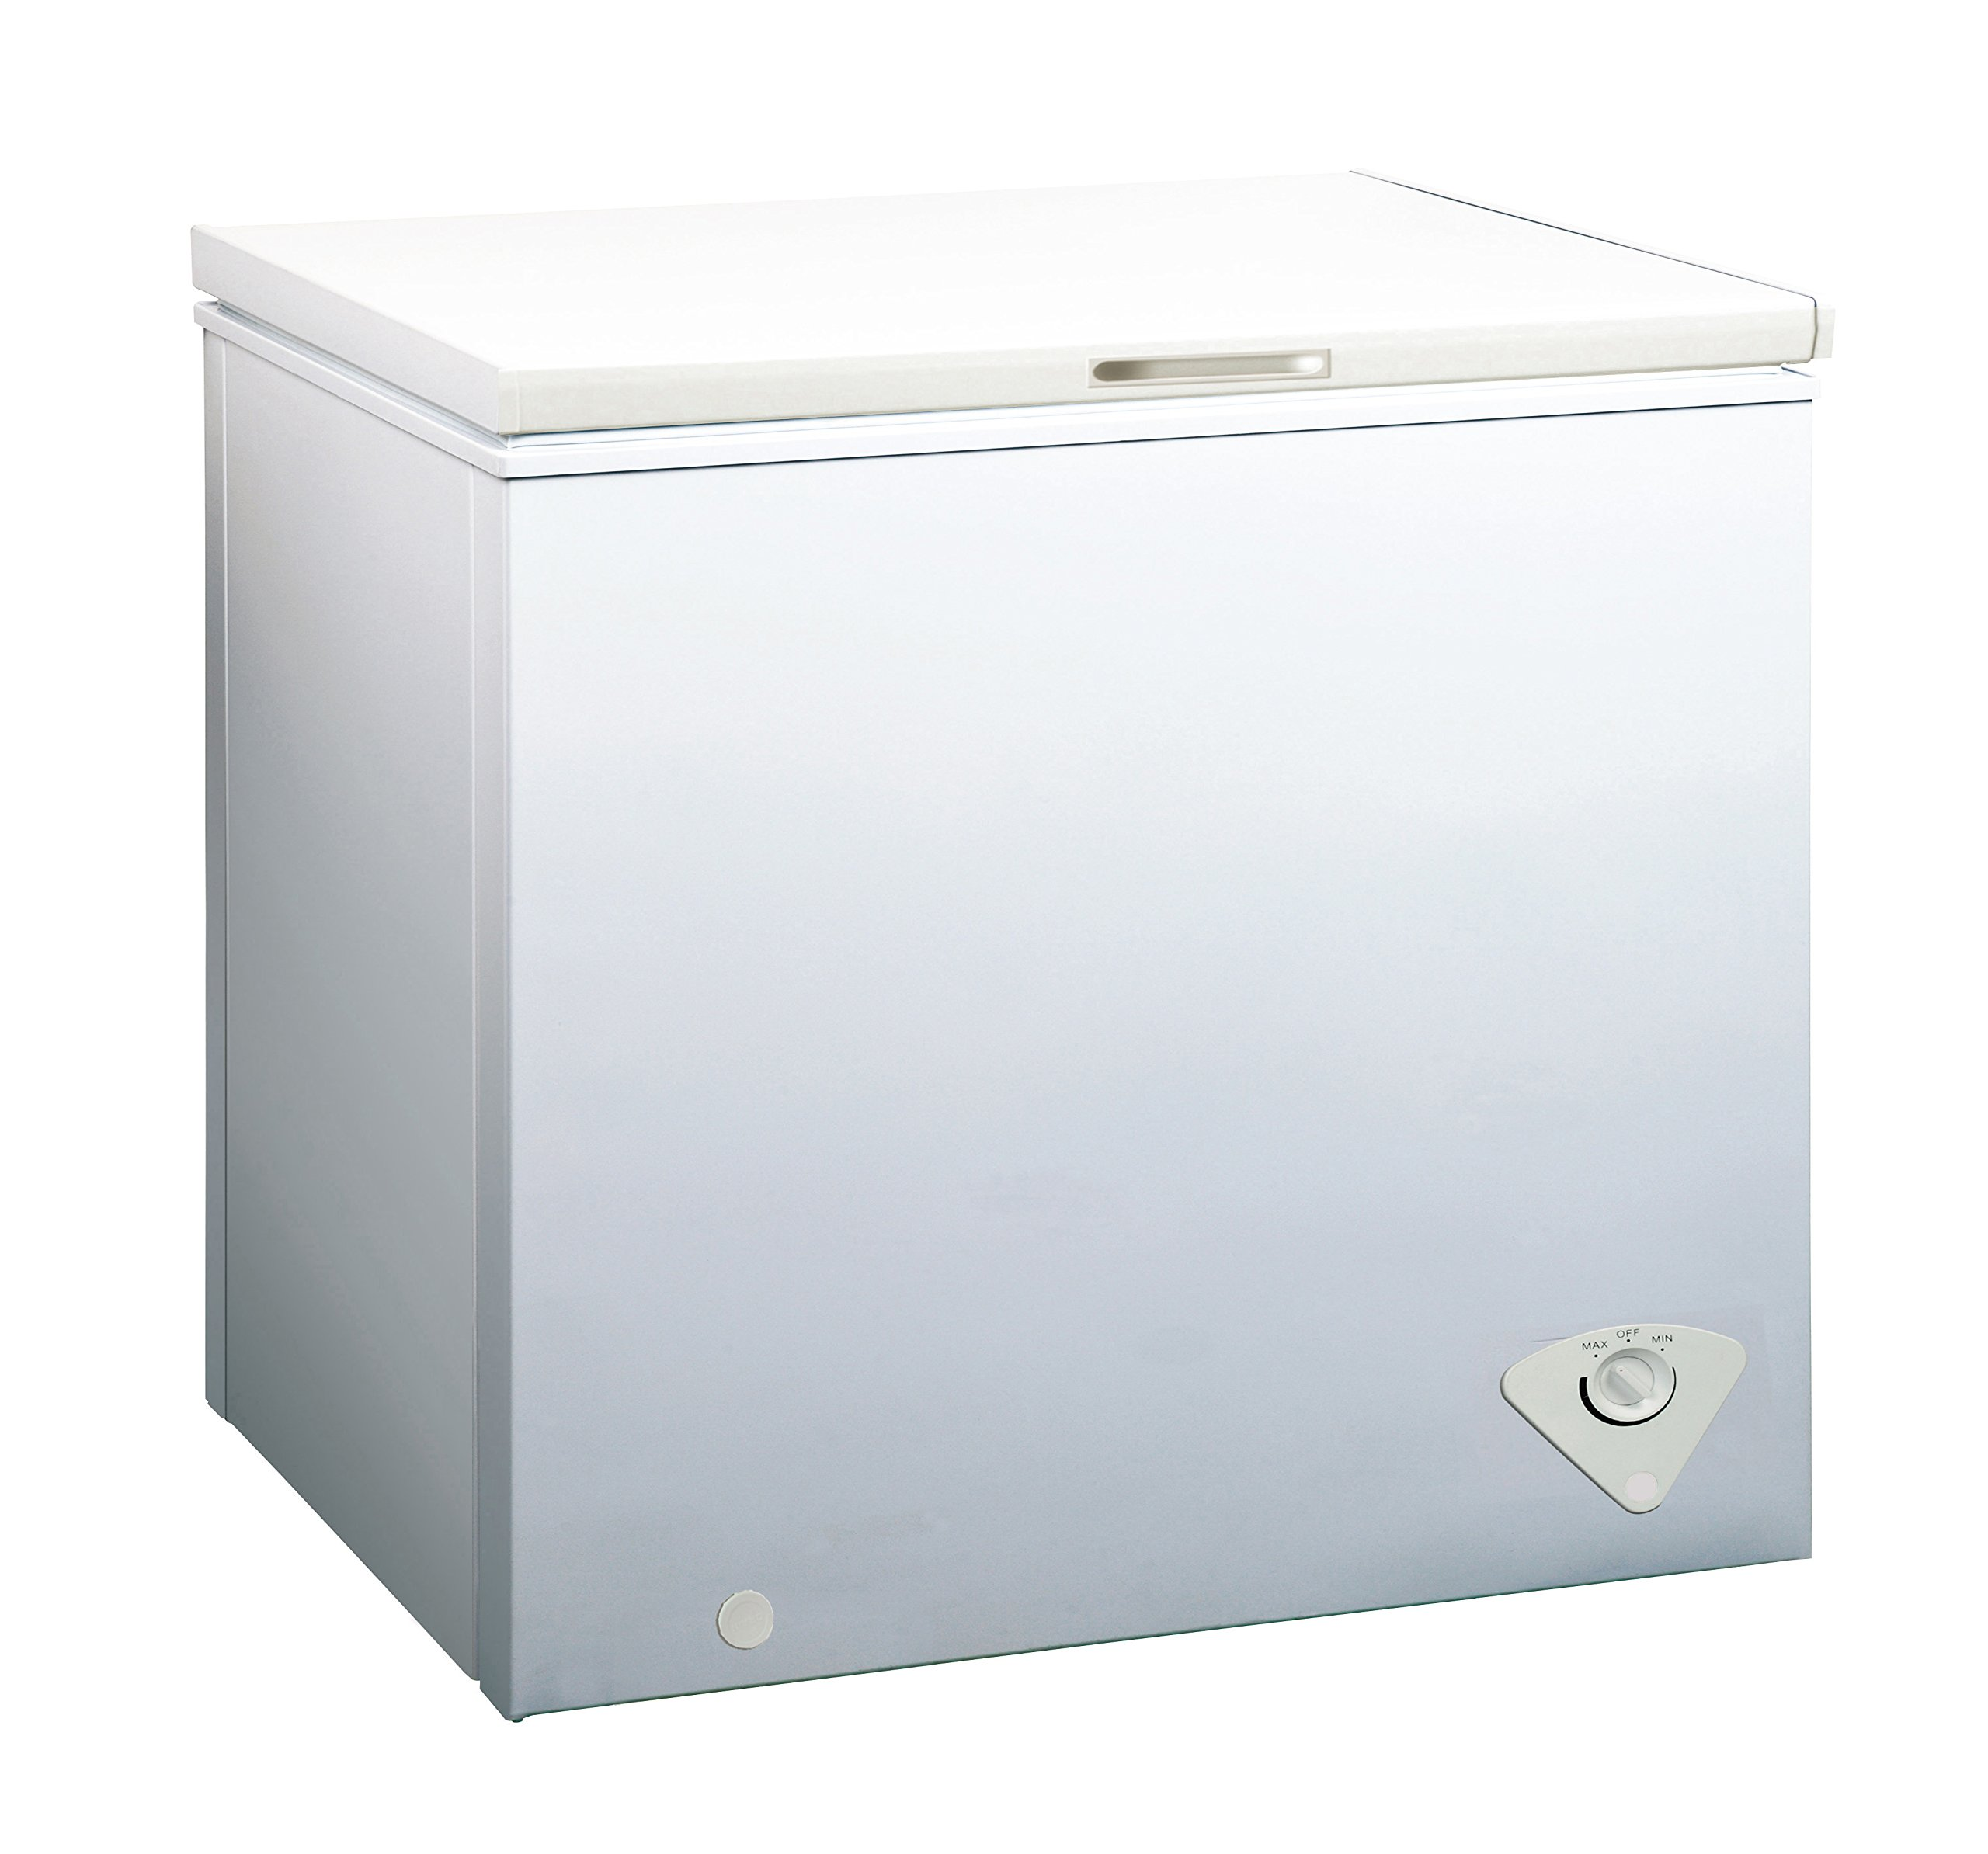 Midea WHS-258C1 Single Door Chest Freezer, 7.0 Cubic Feet, White by MIDEA